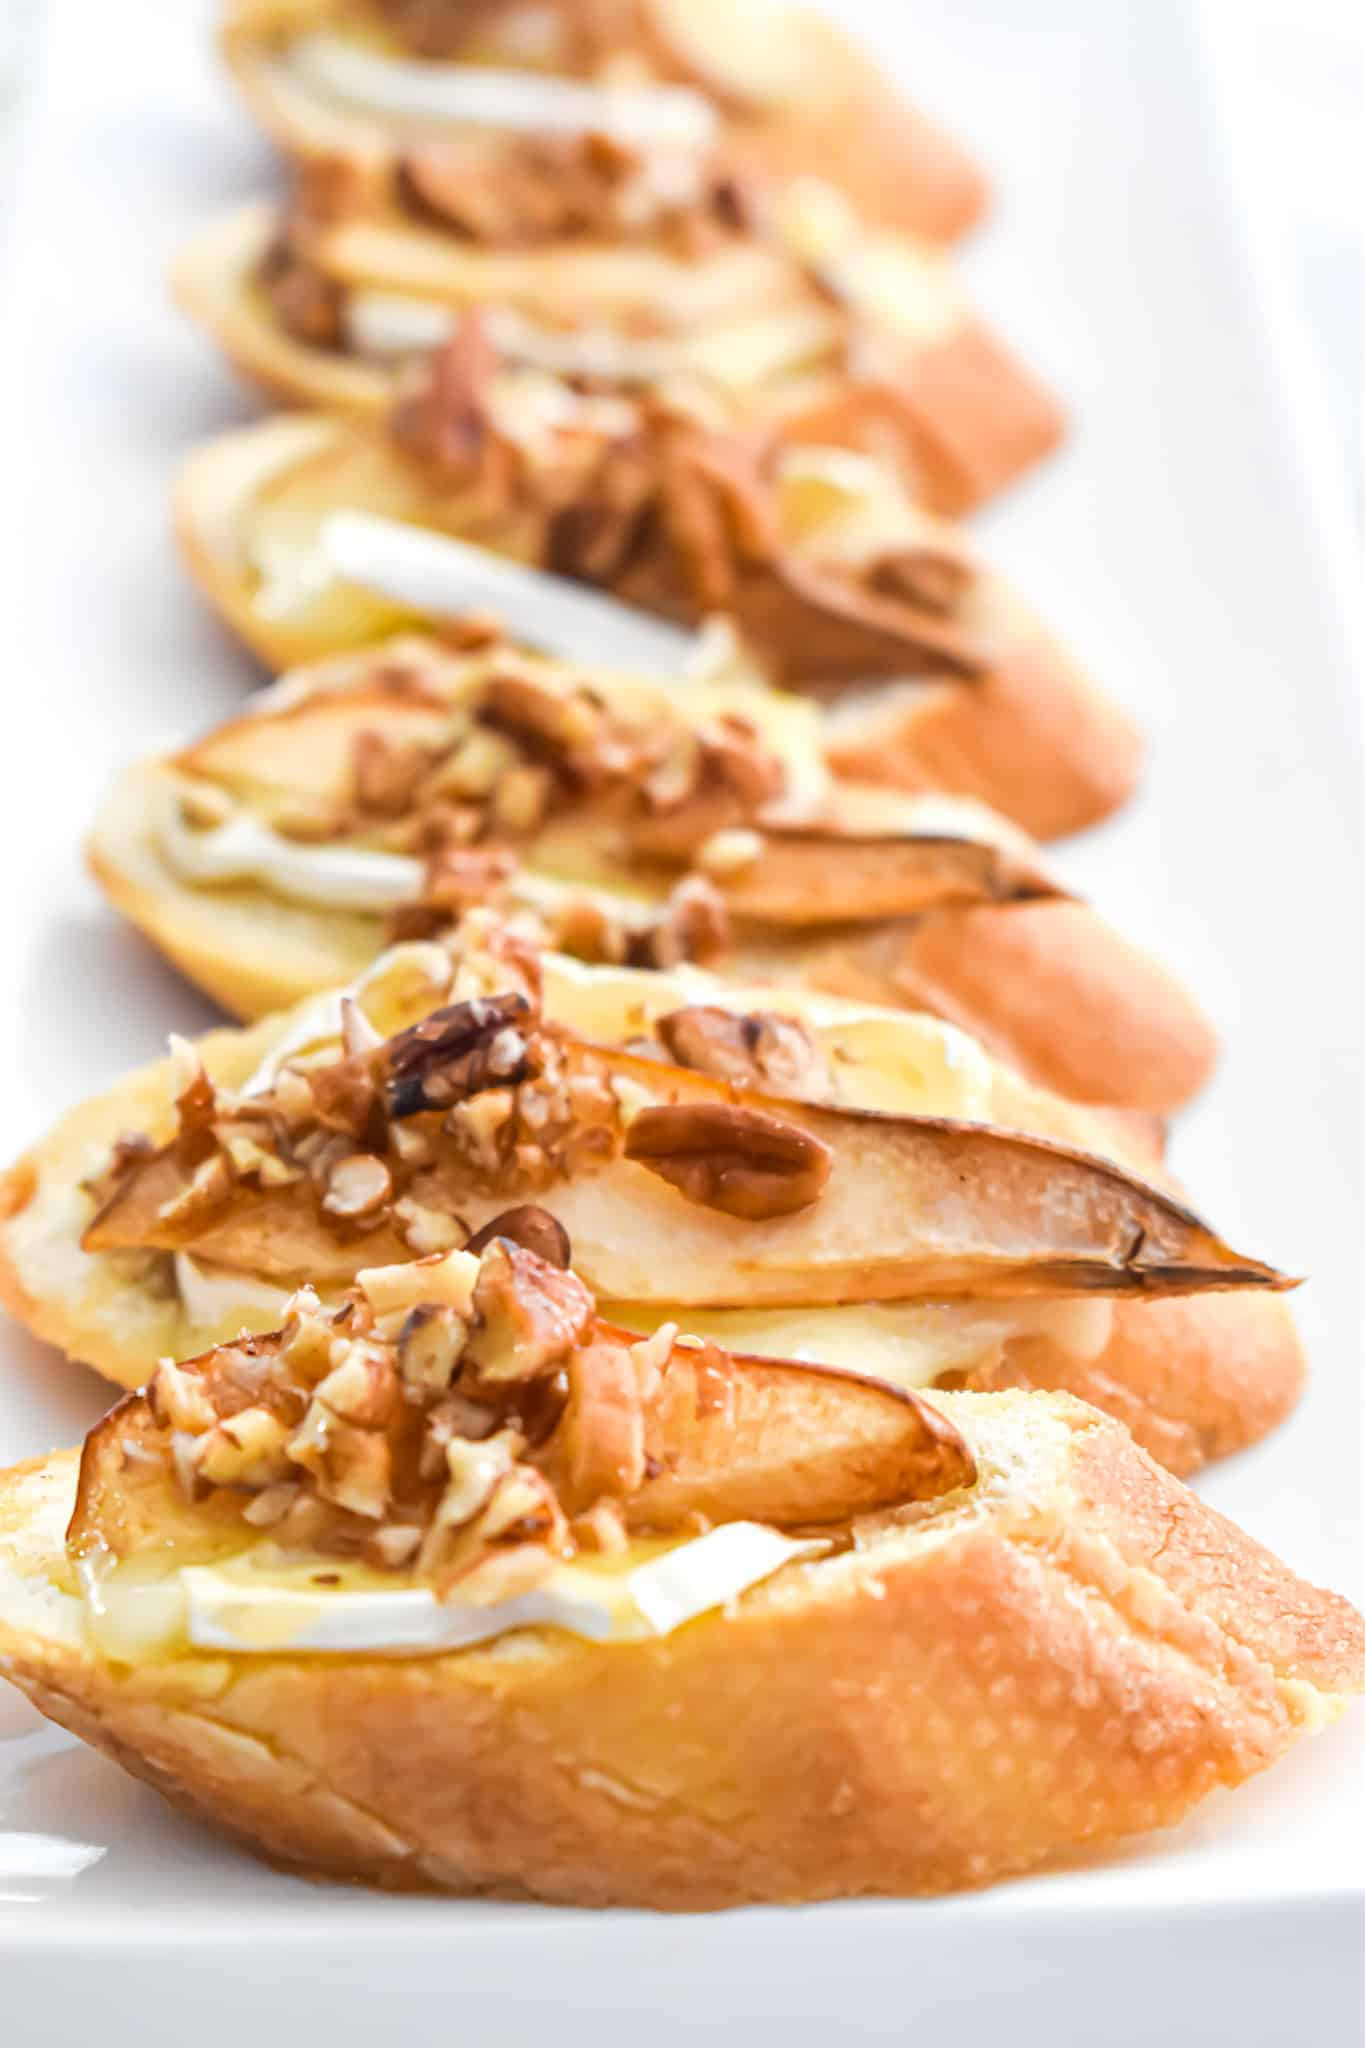 Brie Cheese with Pear, Pecan and Honey Crostini